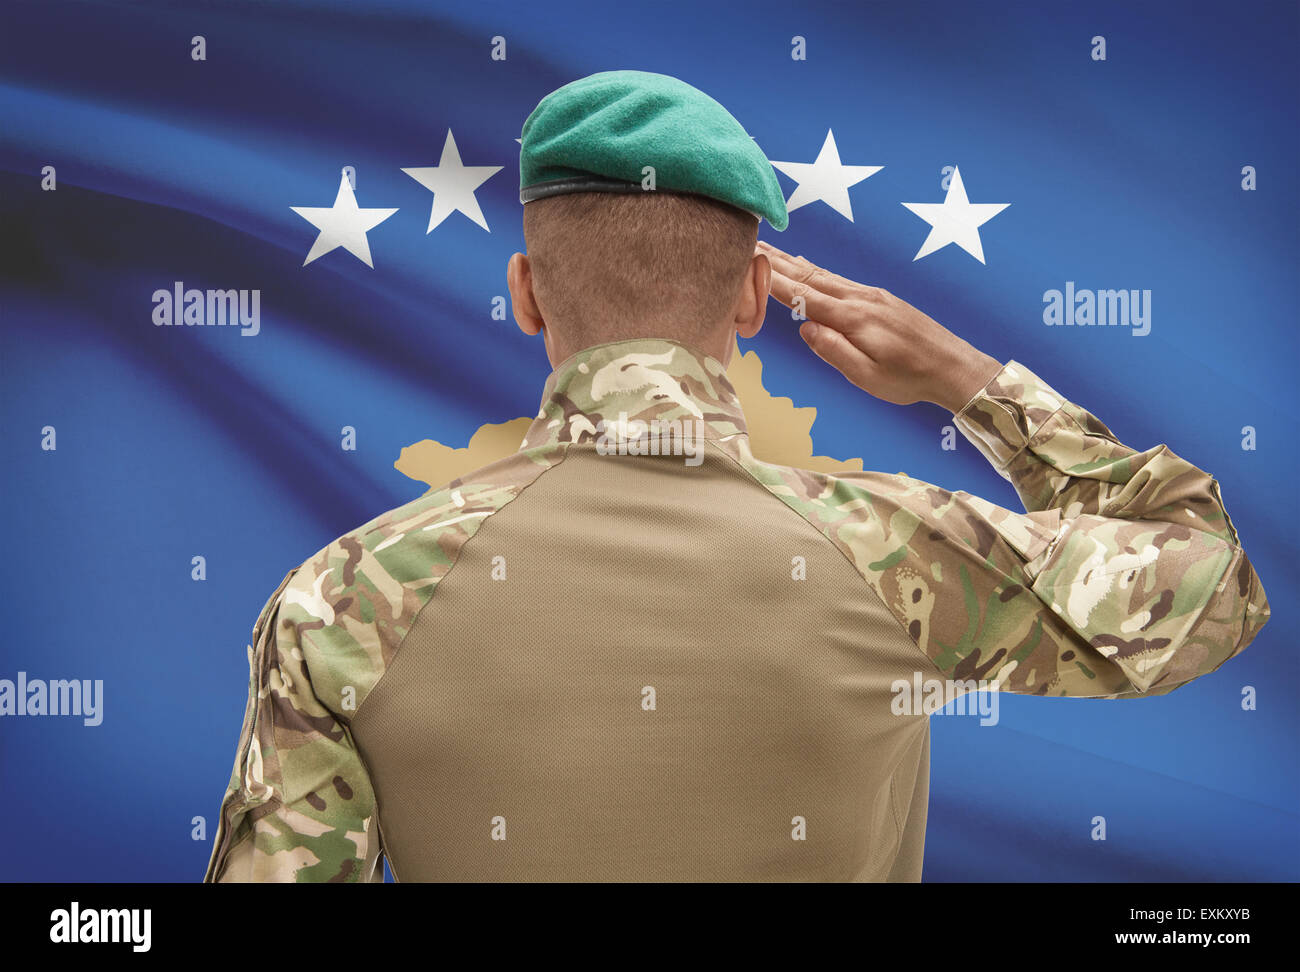 Dark-skinned soldier in hat facing national flag series - Kosovo Stock Photo